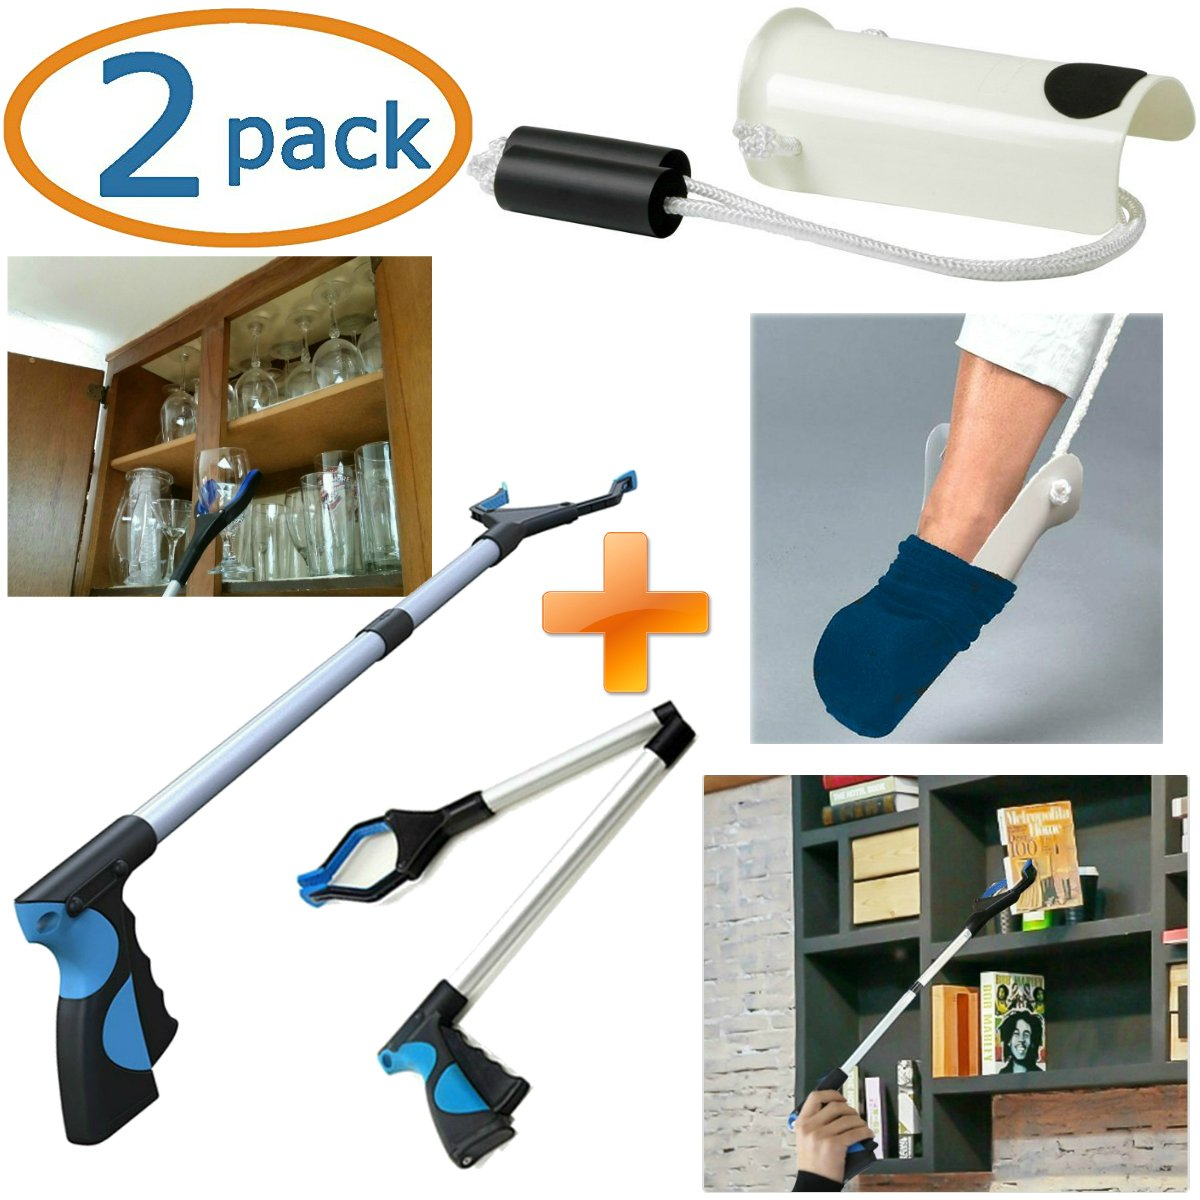 Grabber Reacher Tool & Sock Aid Kit Assist 2 Pack Mobility Tool Kit Adjustable Lightweight & Portable Reaching Assist Tools by Kitchen Krush